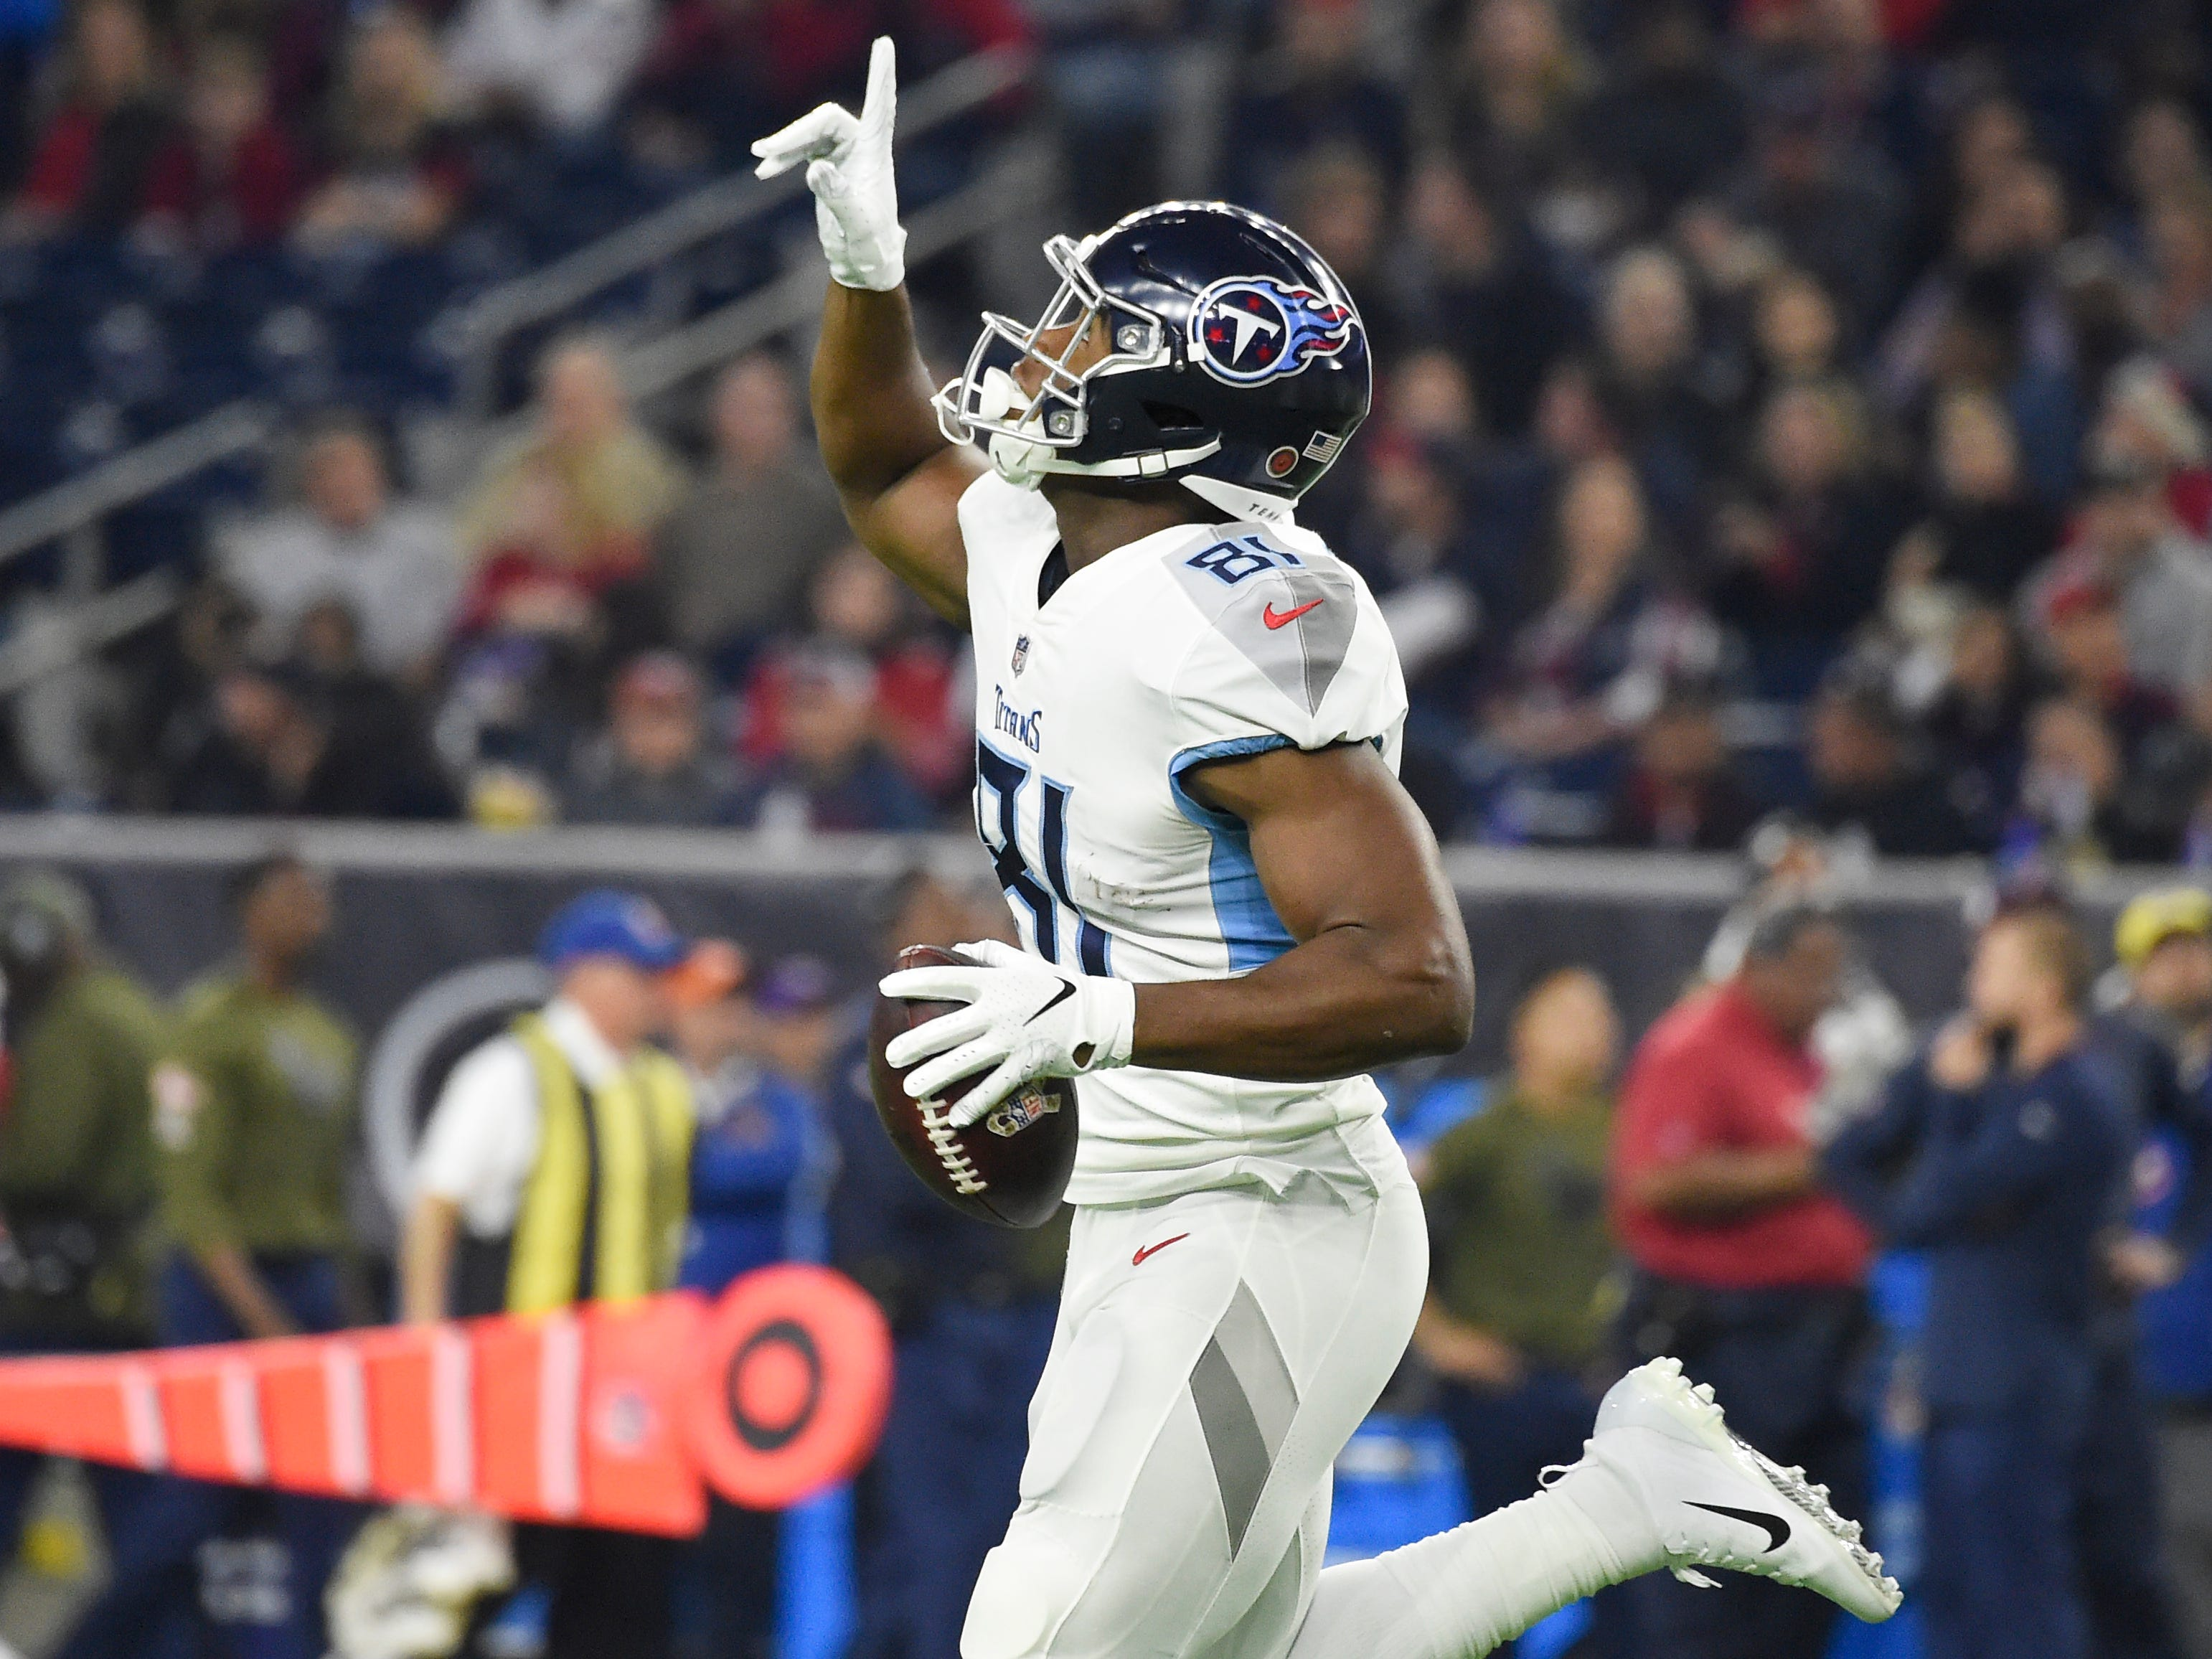 Titans tight end Jonnu Smith (81) celebrates his touchdown in the first quarter at NRG Stadium Monday, Nov. 26, 2018, in Houston, Texas.